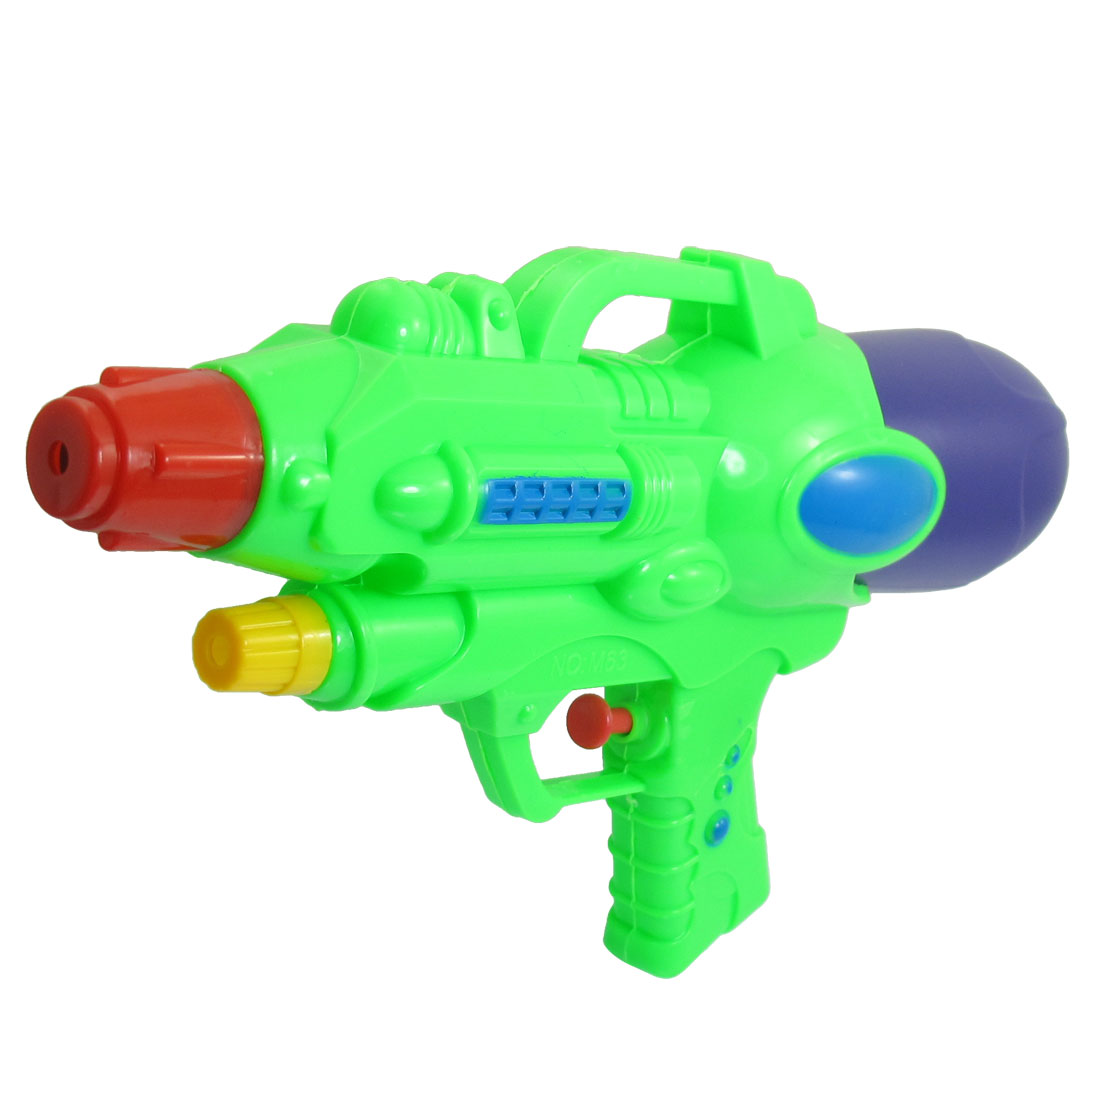 "10.2"" Long Purple Green Plastic Water Spray Gun Squirt Toy for Child"